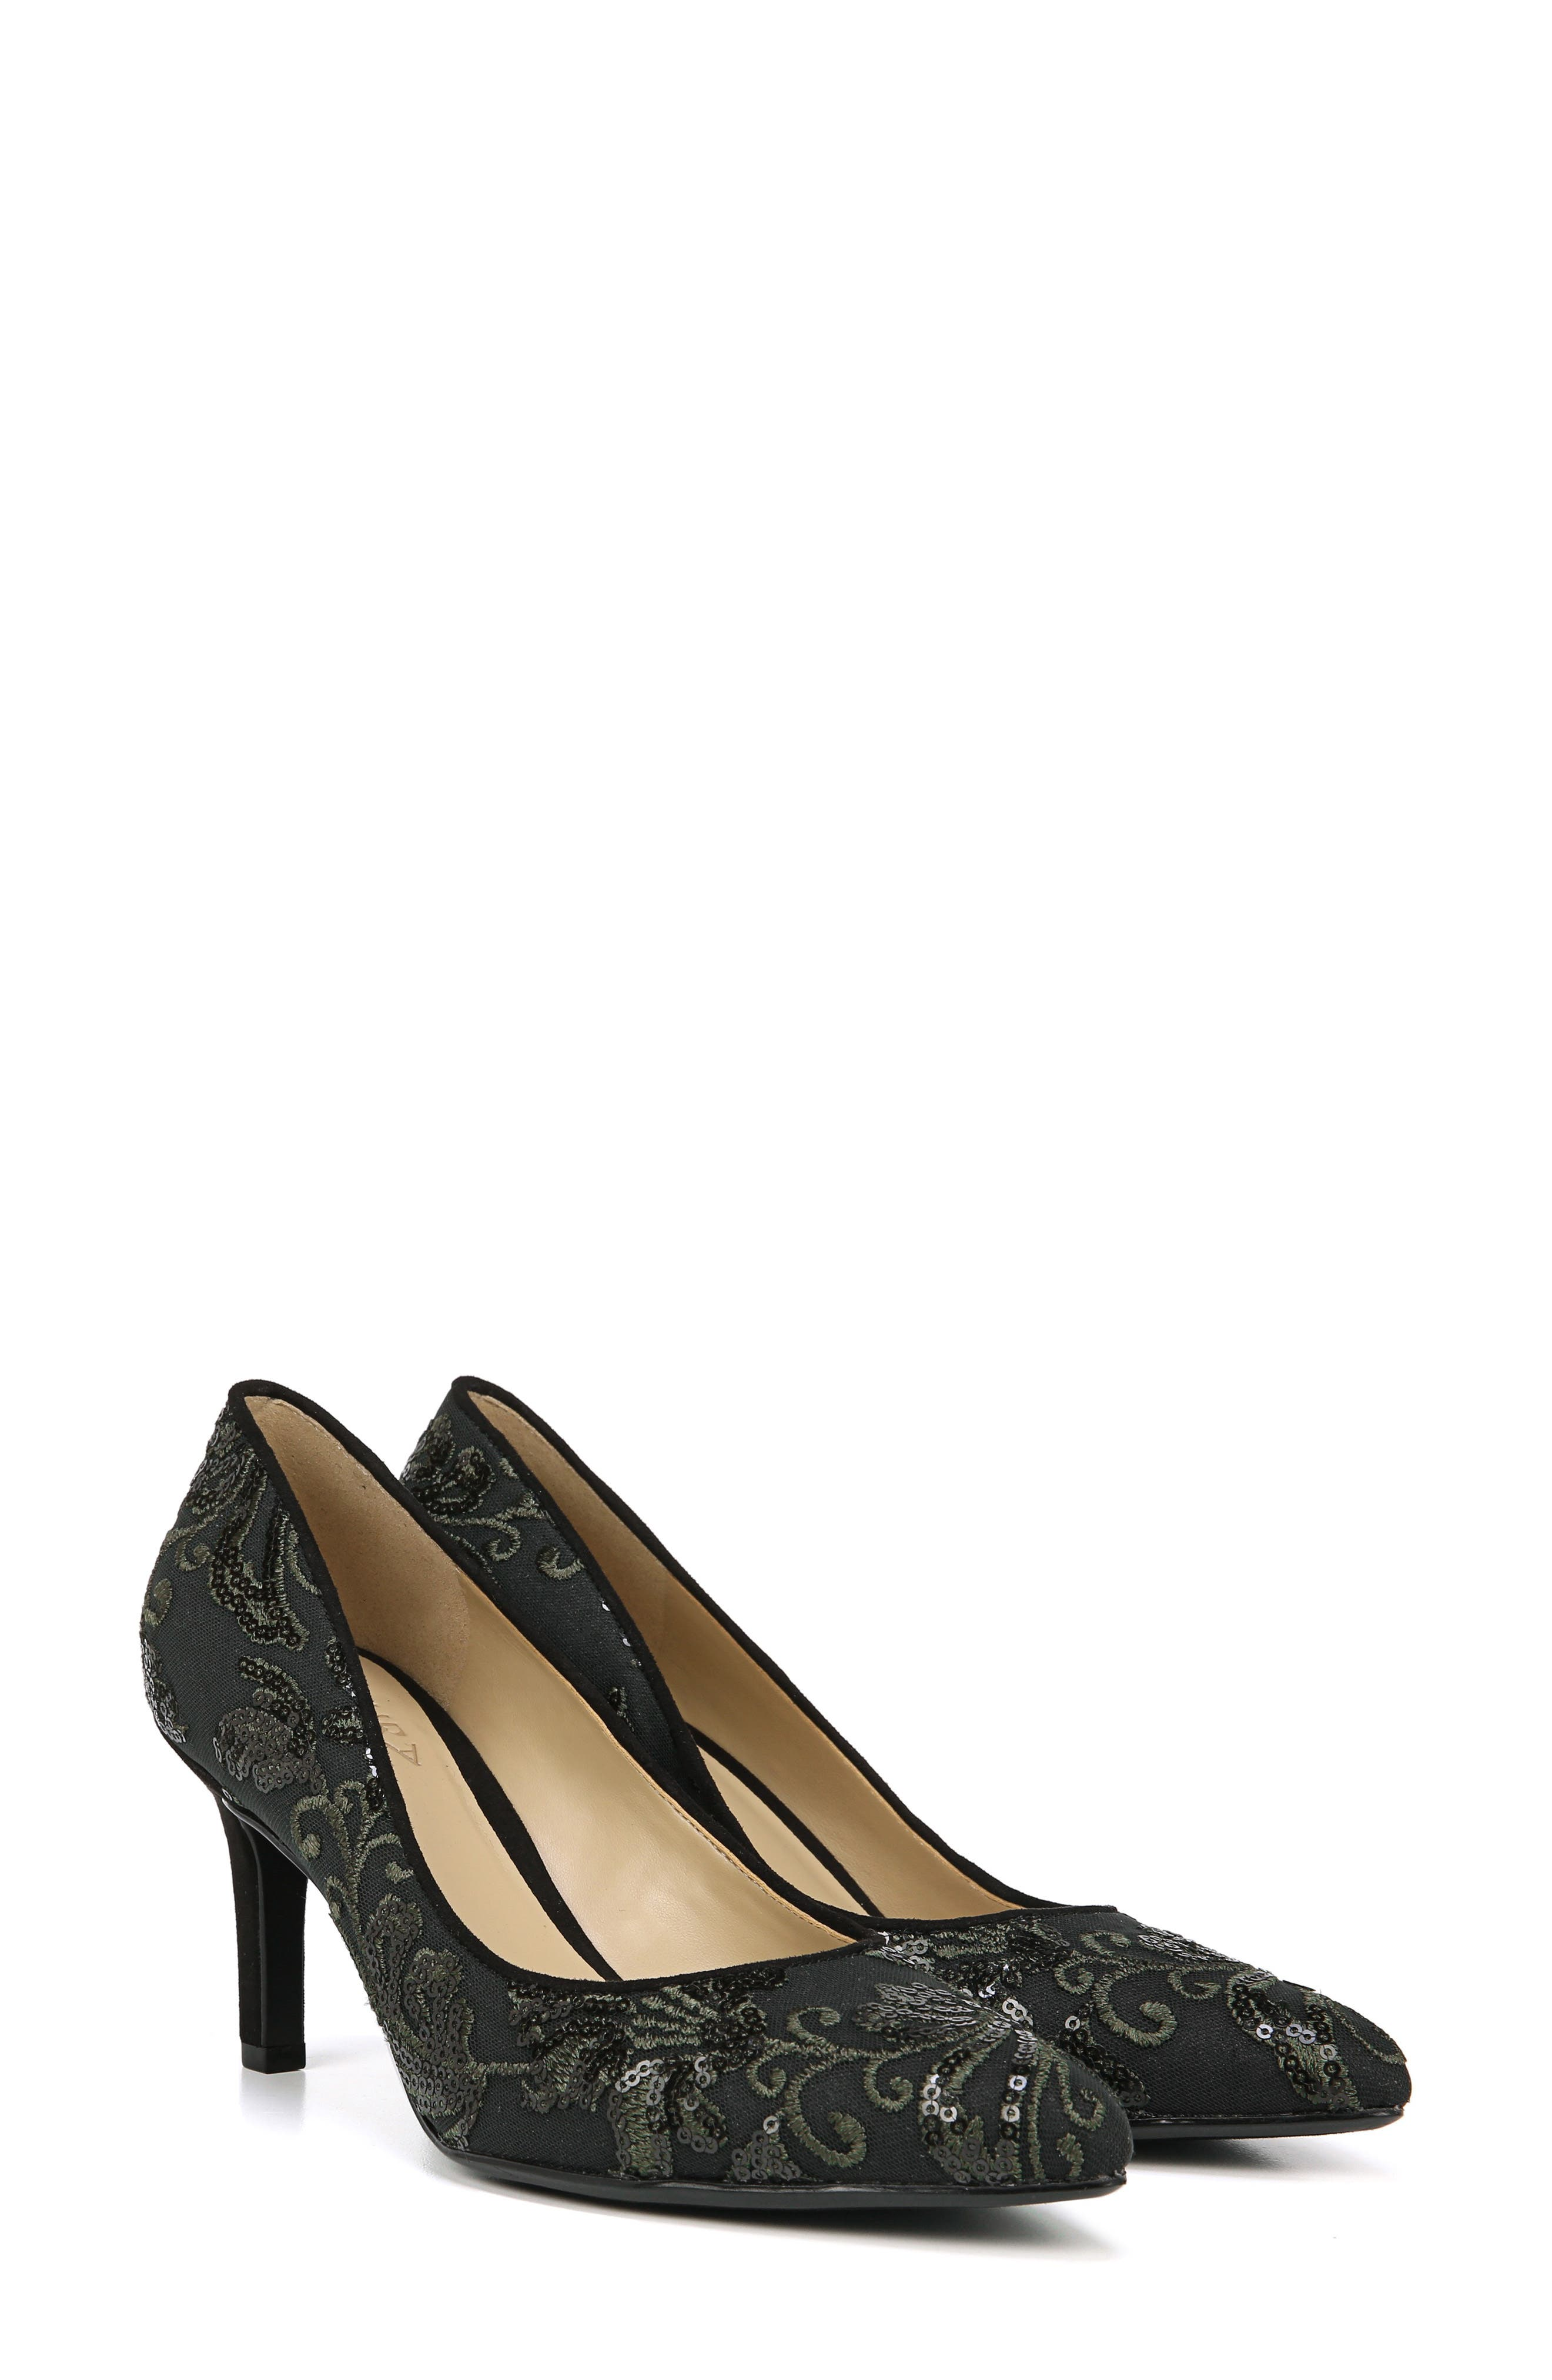 NATURALIZER, Natalie Pointy Toe Pump, Alternate thumbnail 9, color, FERN GREEN EMBROIDERED